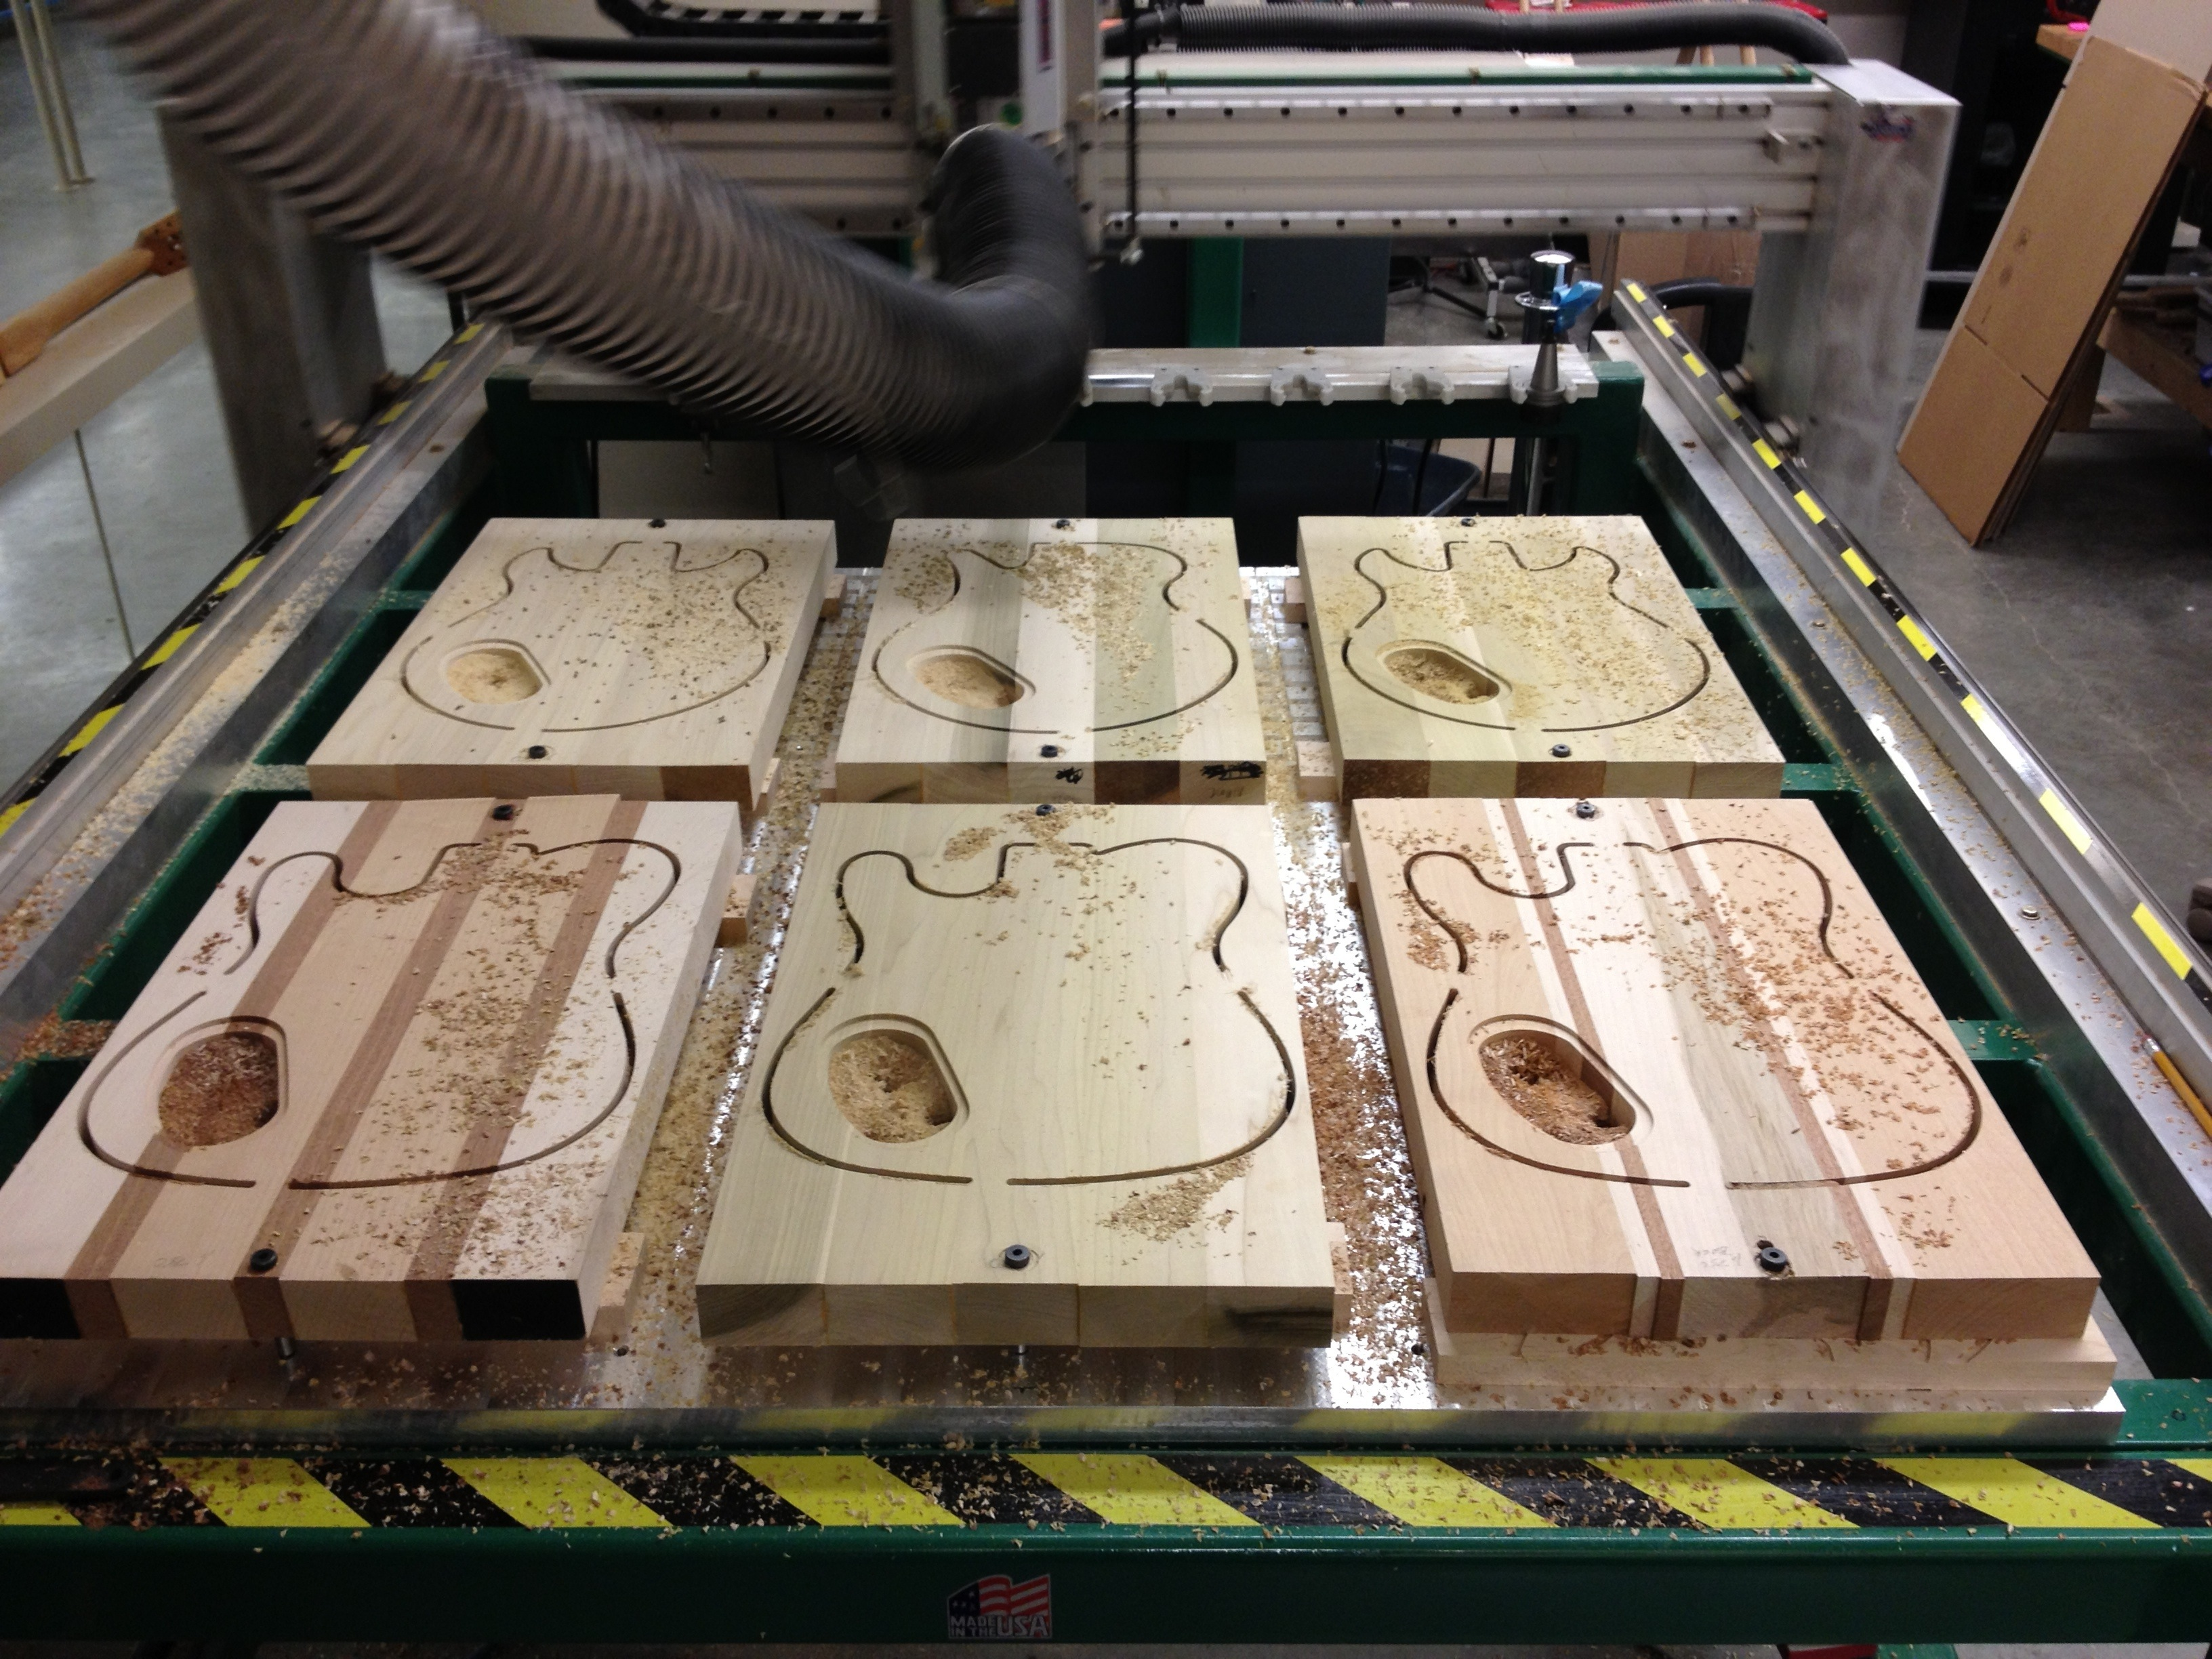 Cool Machines To Build Cnc Michael Mongin